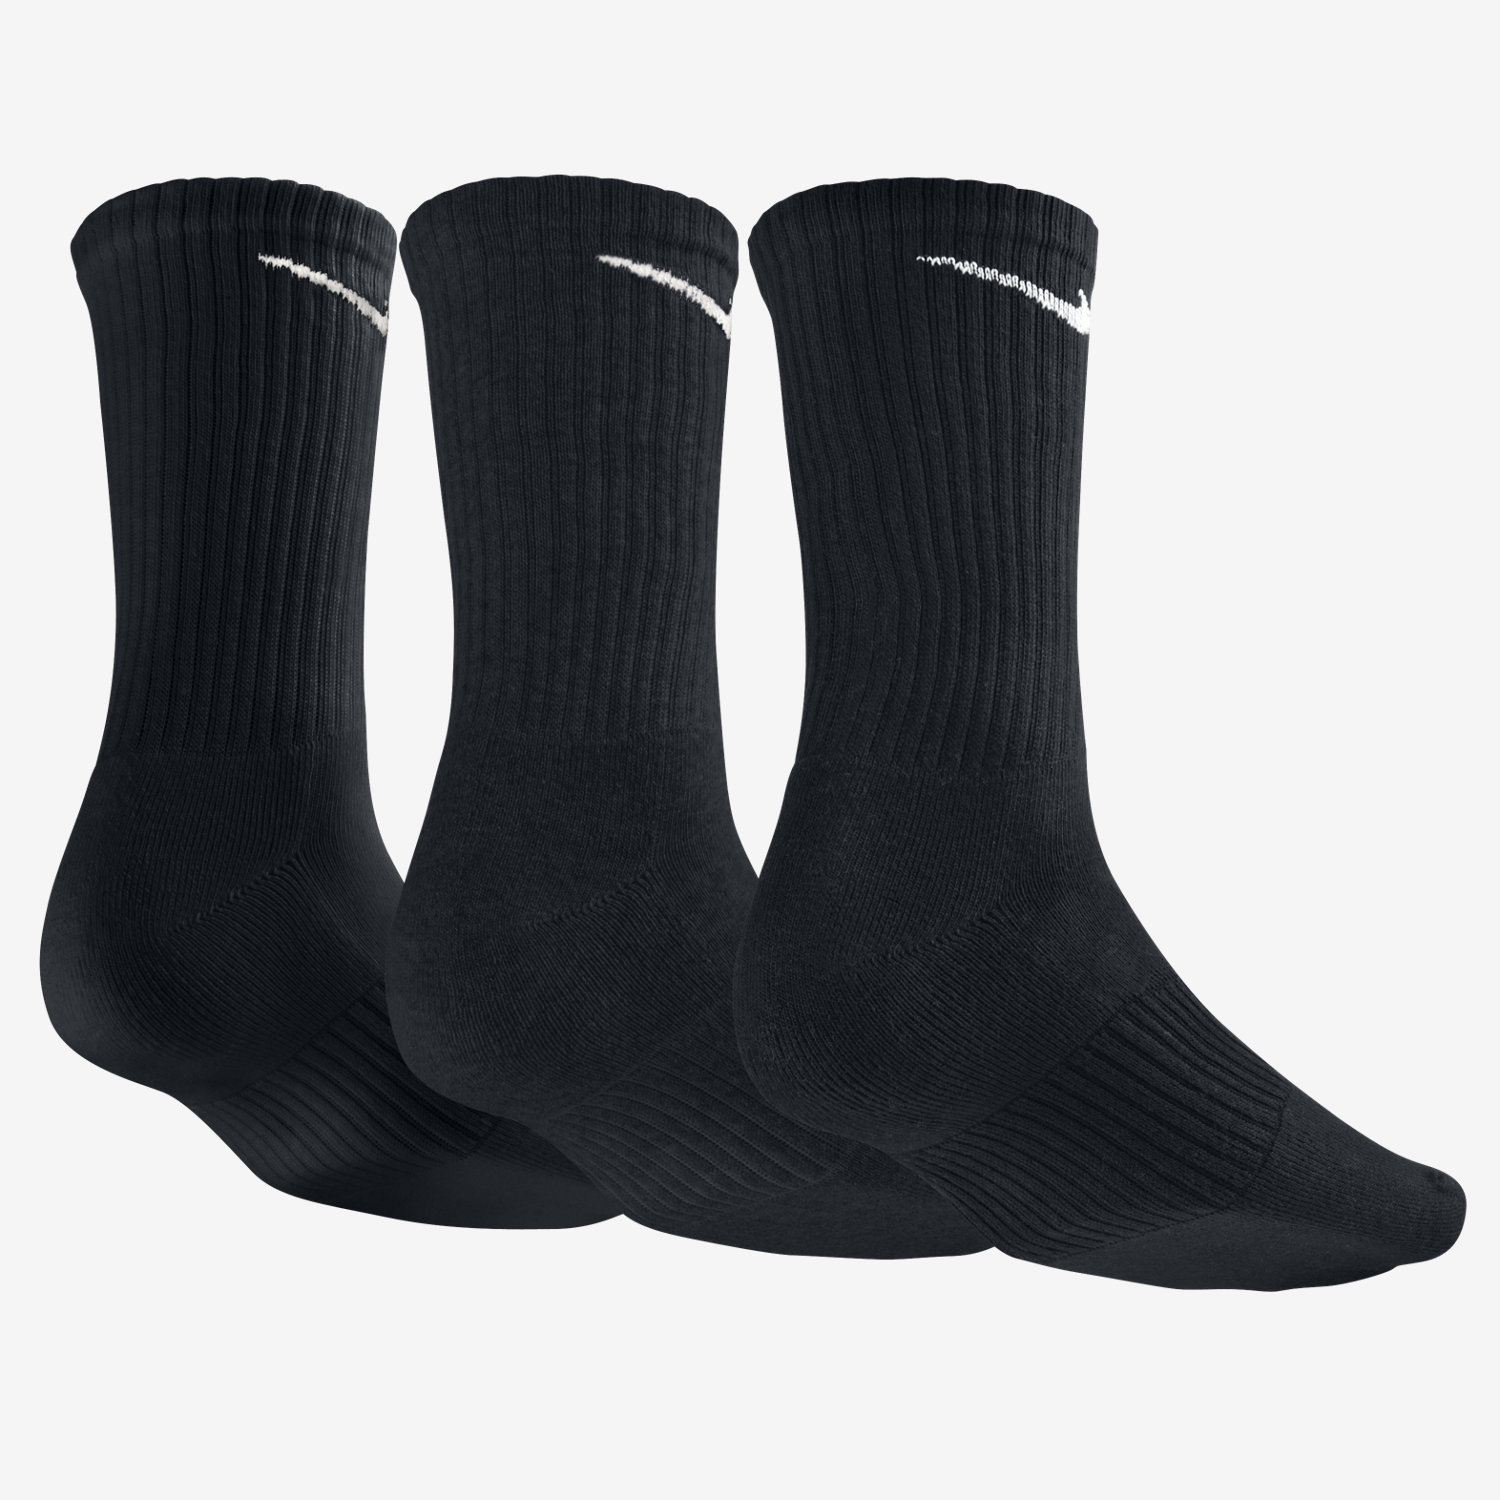 3 pack nike socks nike shoes and accessories. Black Bedroom Furniture Sets. Home Design Ideas